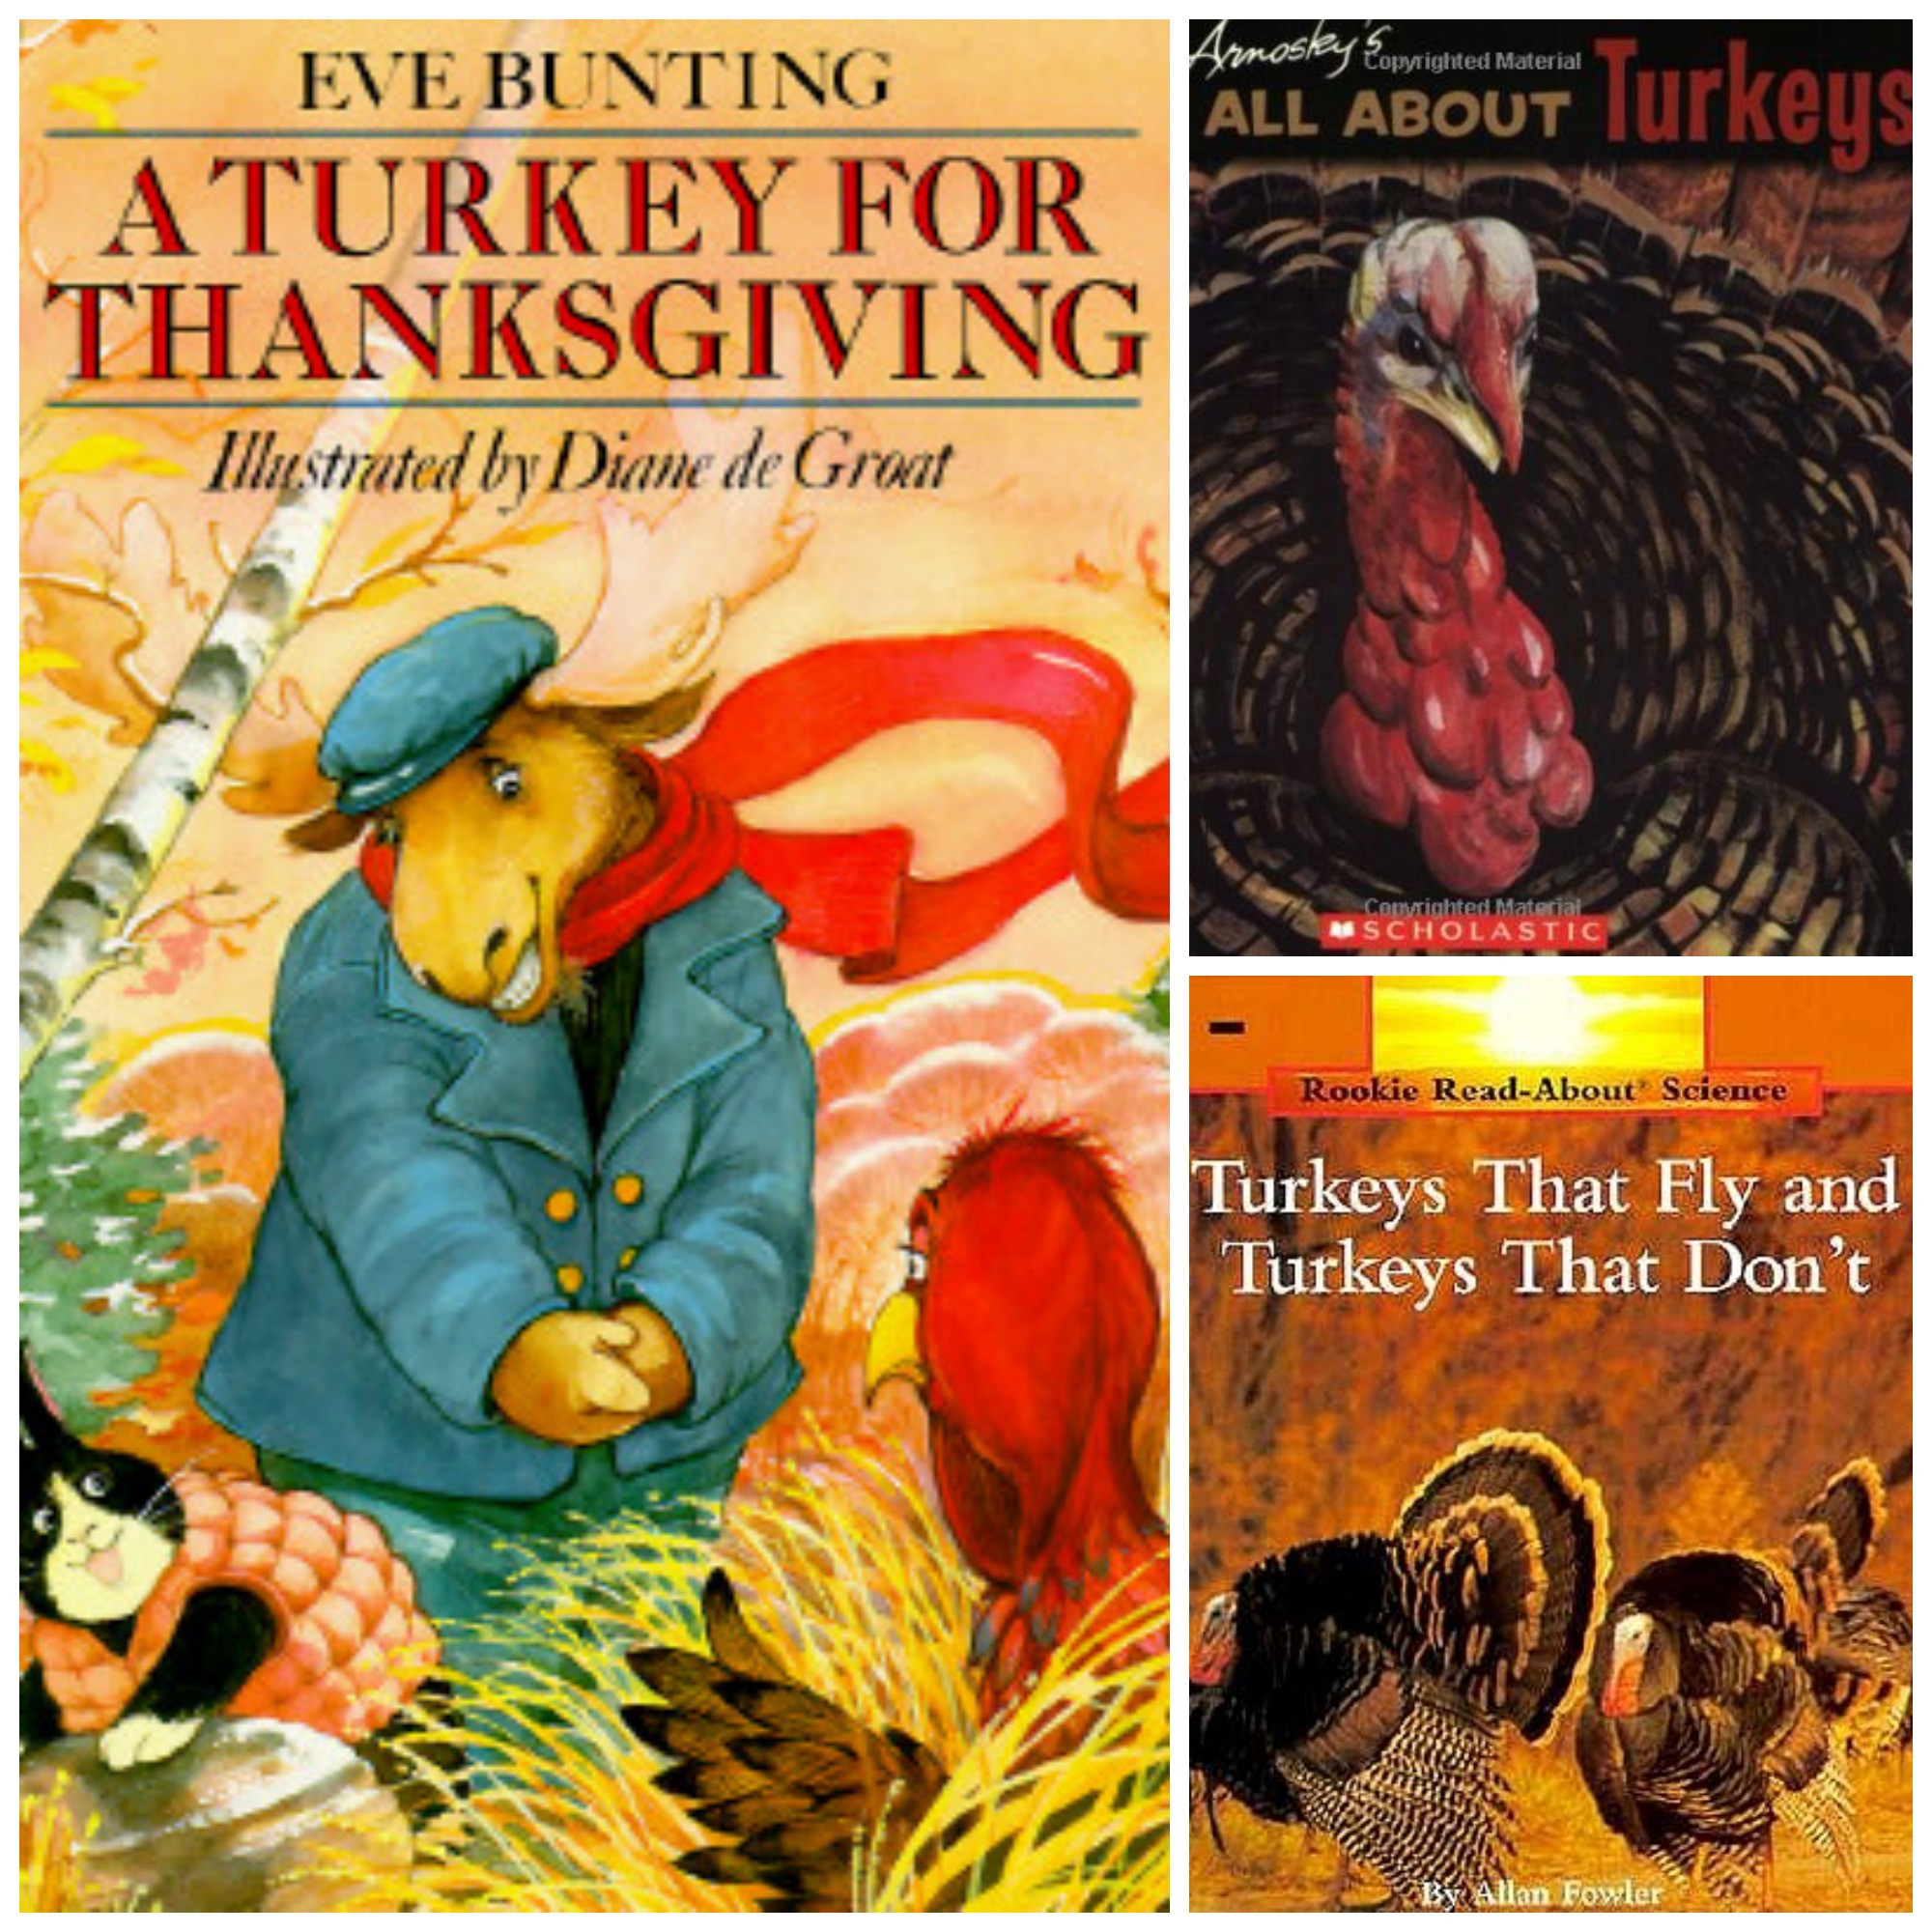 A Turkey For Thanksgiving By Eve Bunting  Our Crafts N Things Blog Archive Poppins Book Nook